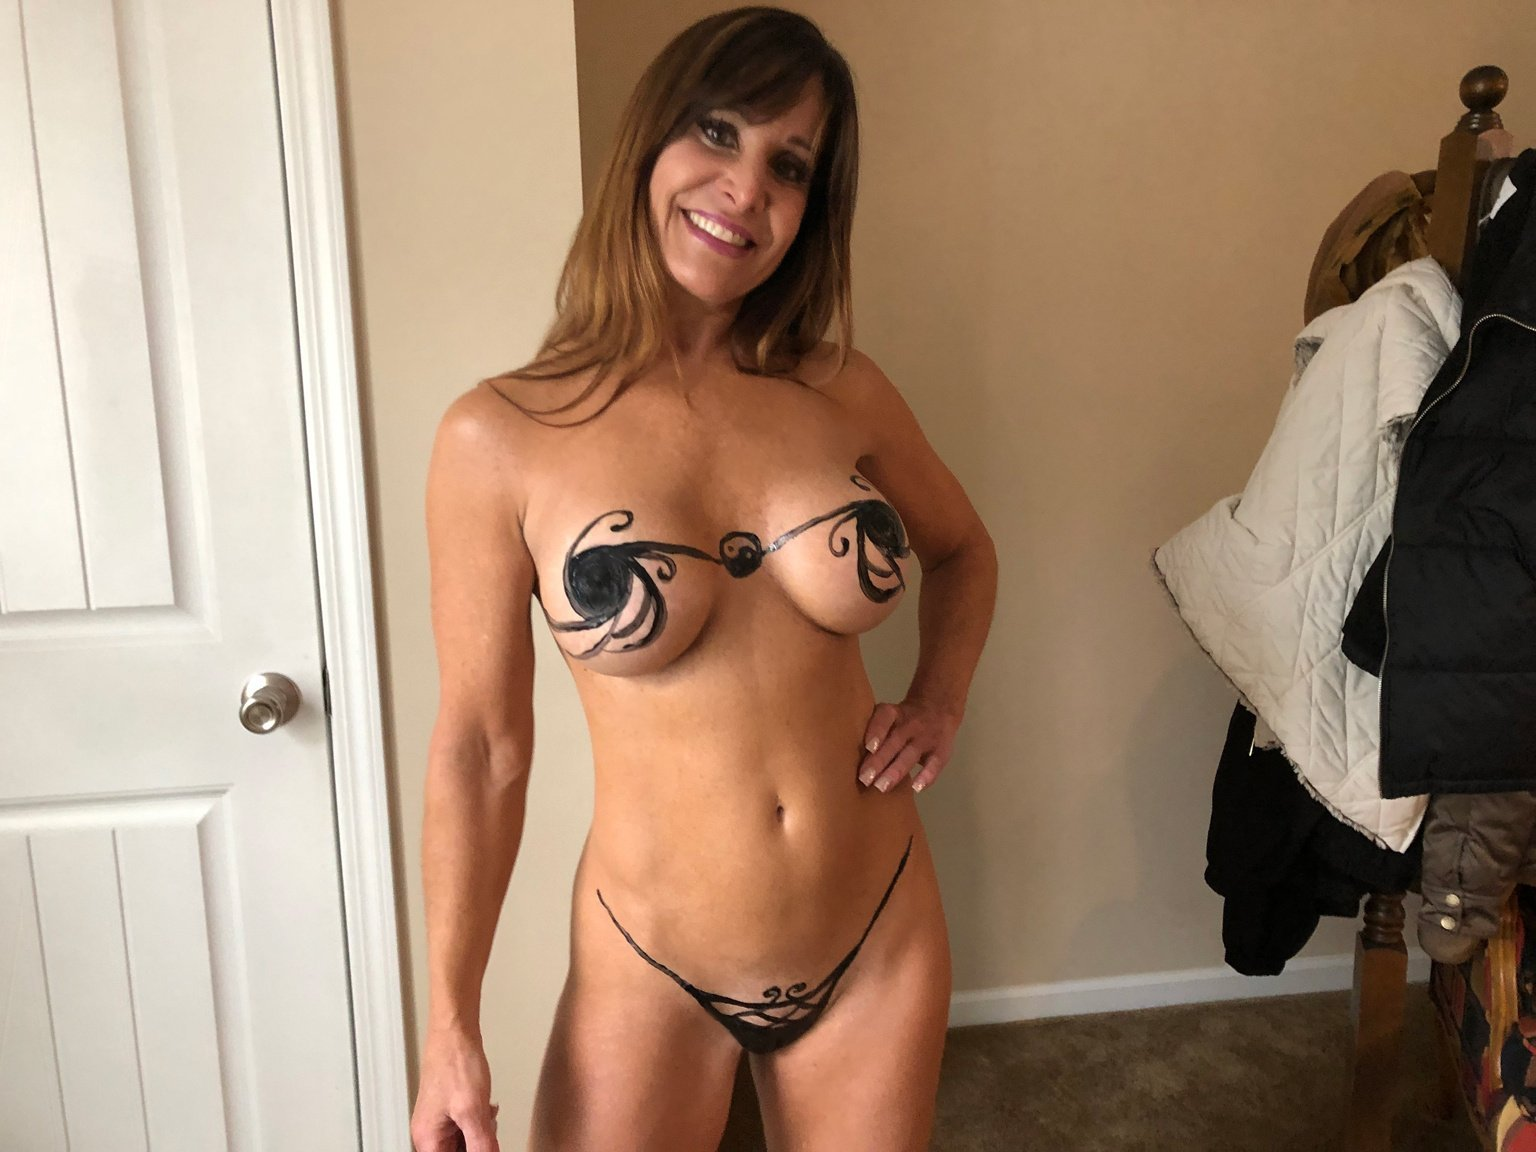 Banshee Moon Youtuber – Leaked Photos from Patreon